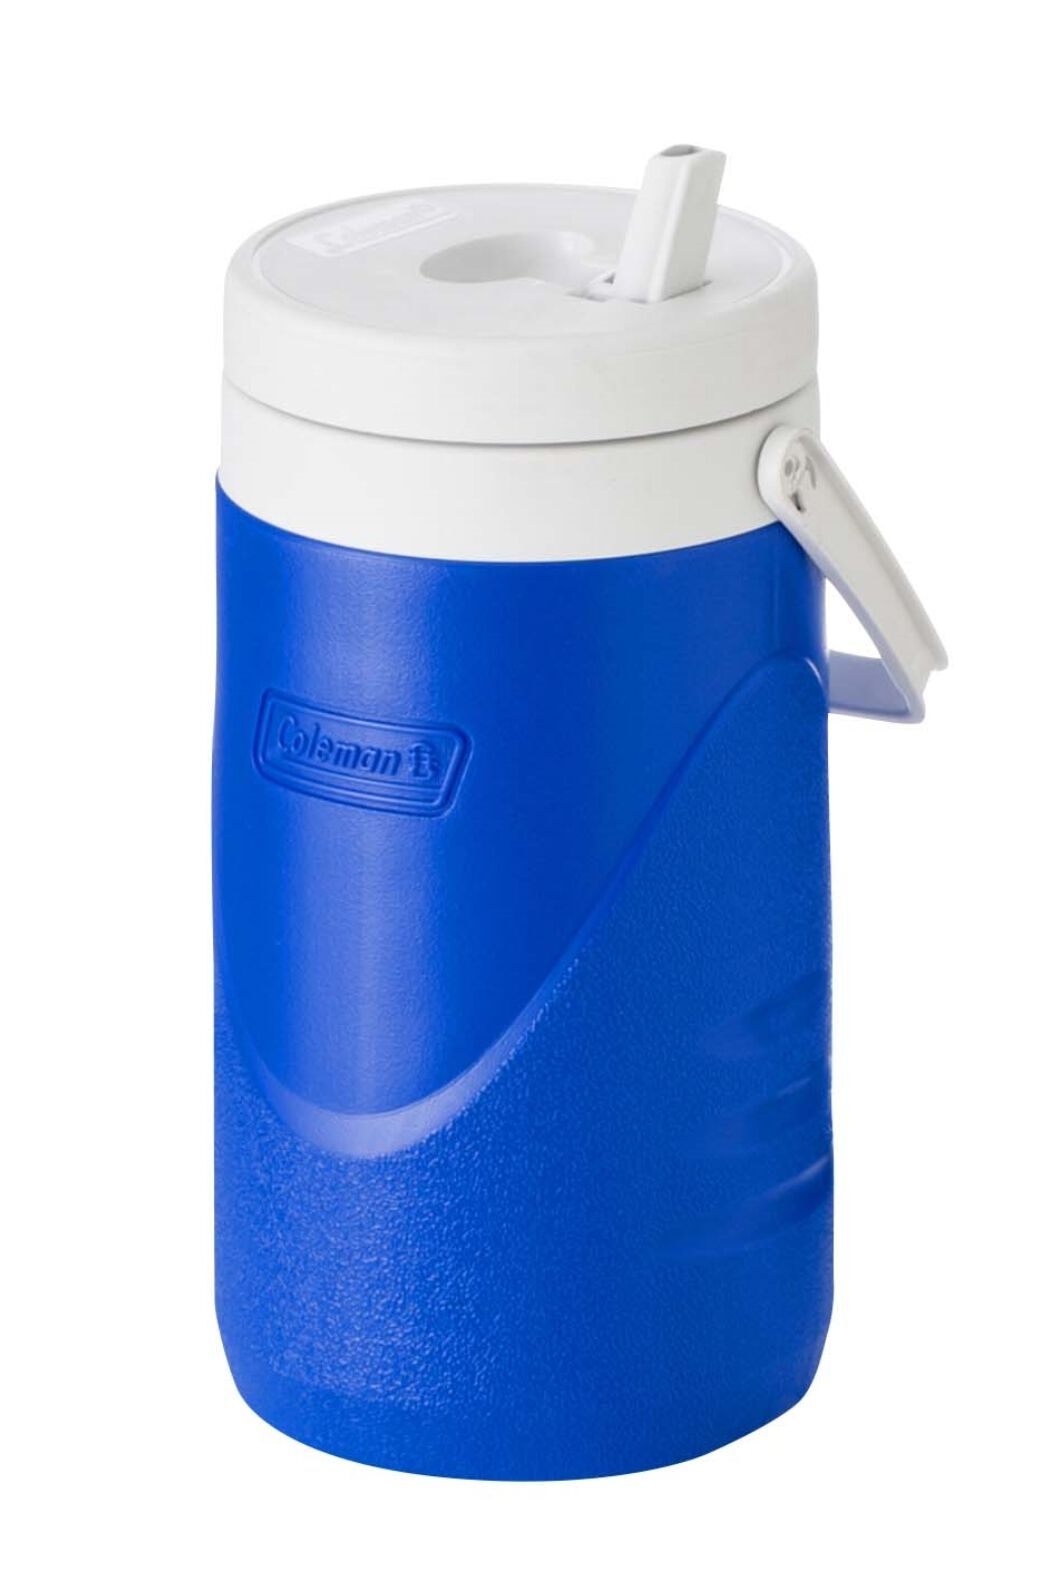 Coleman 1.9L Jug Cooler, None, hi-res